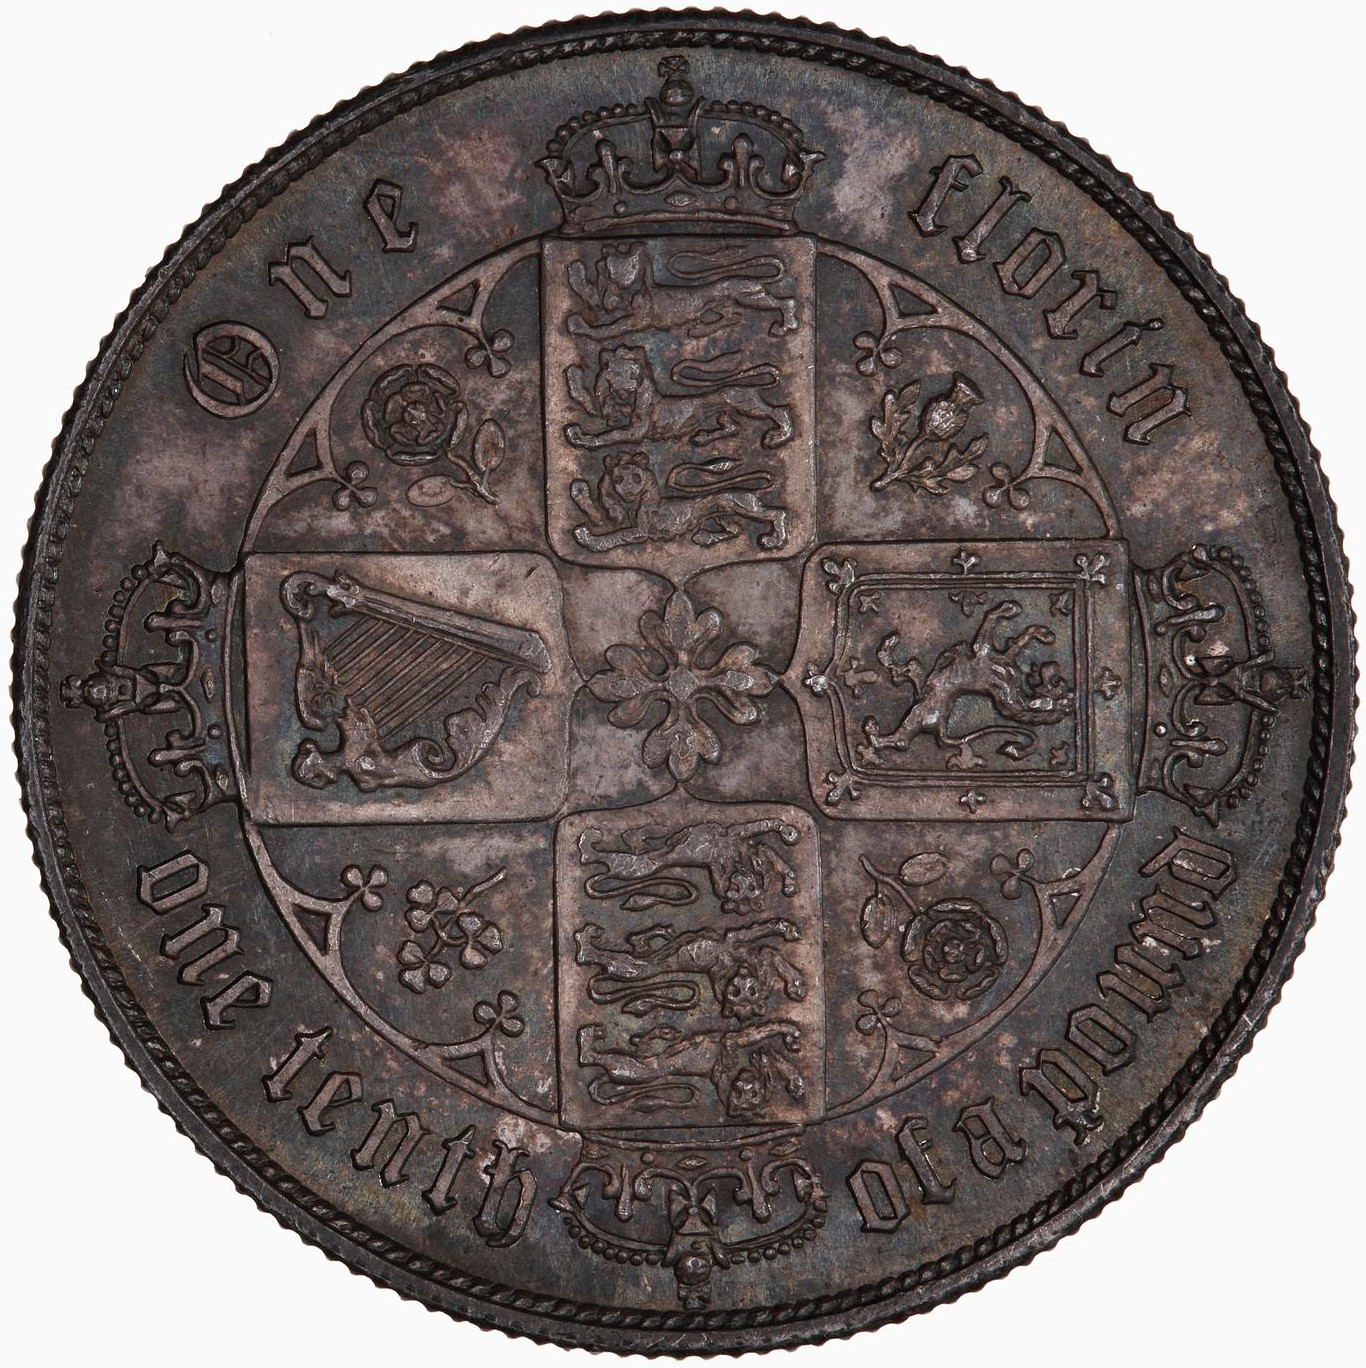 Florin 1868: Photo Coin - Florin, Queen Victoria, Great Britain, 1868